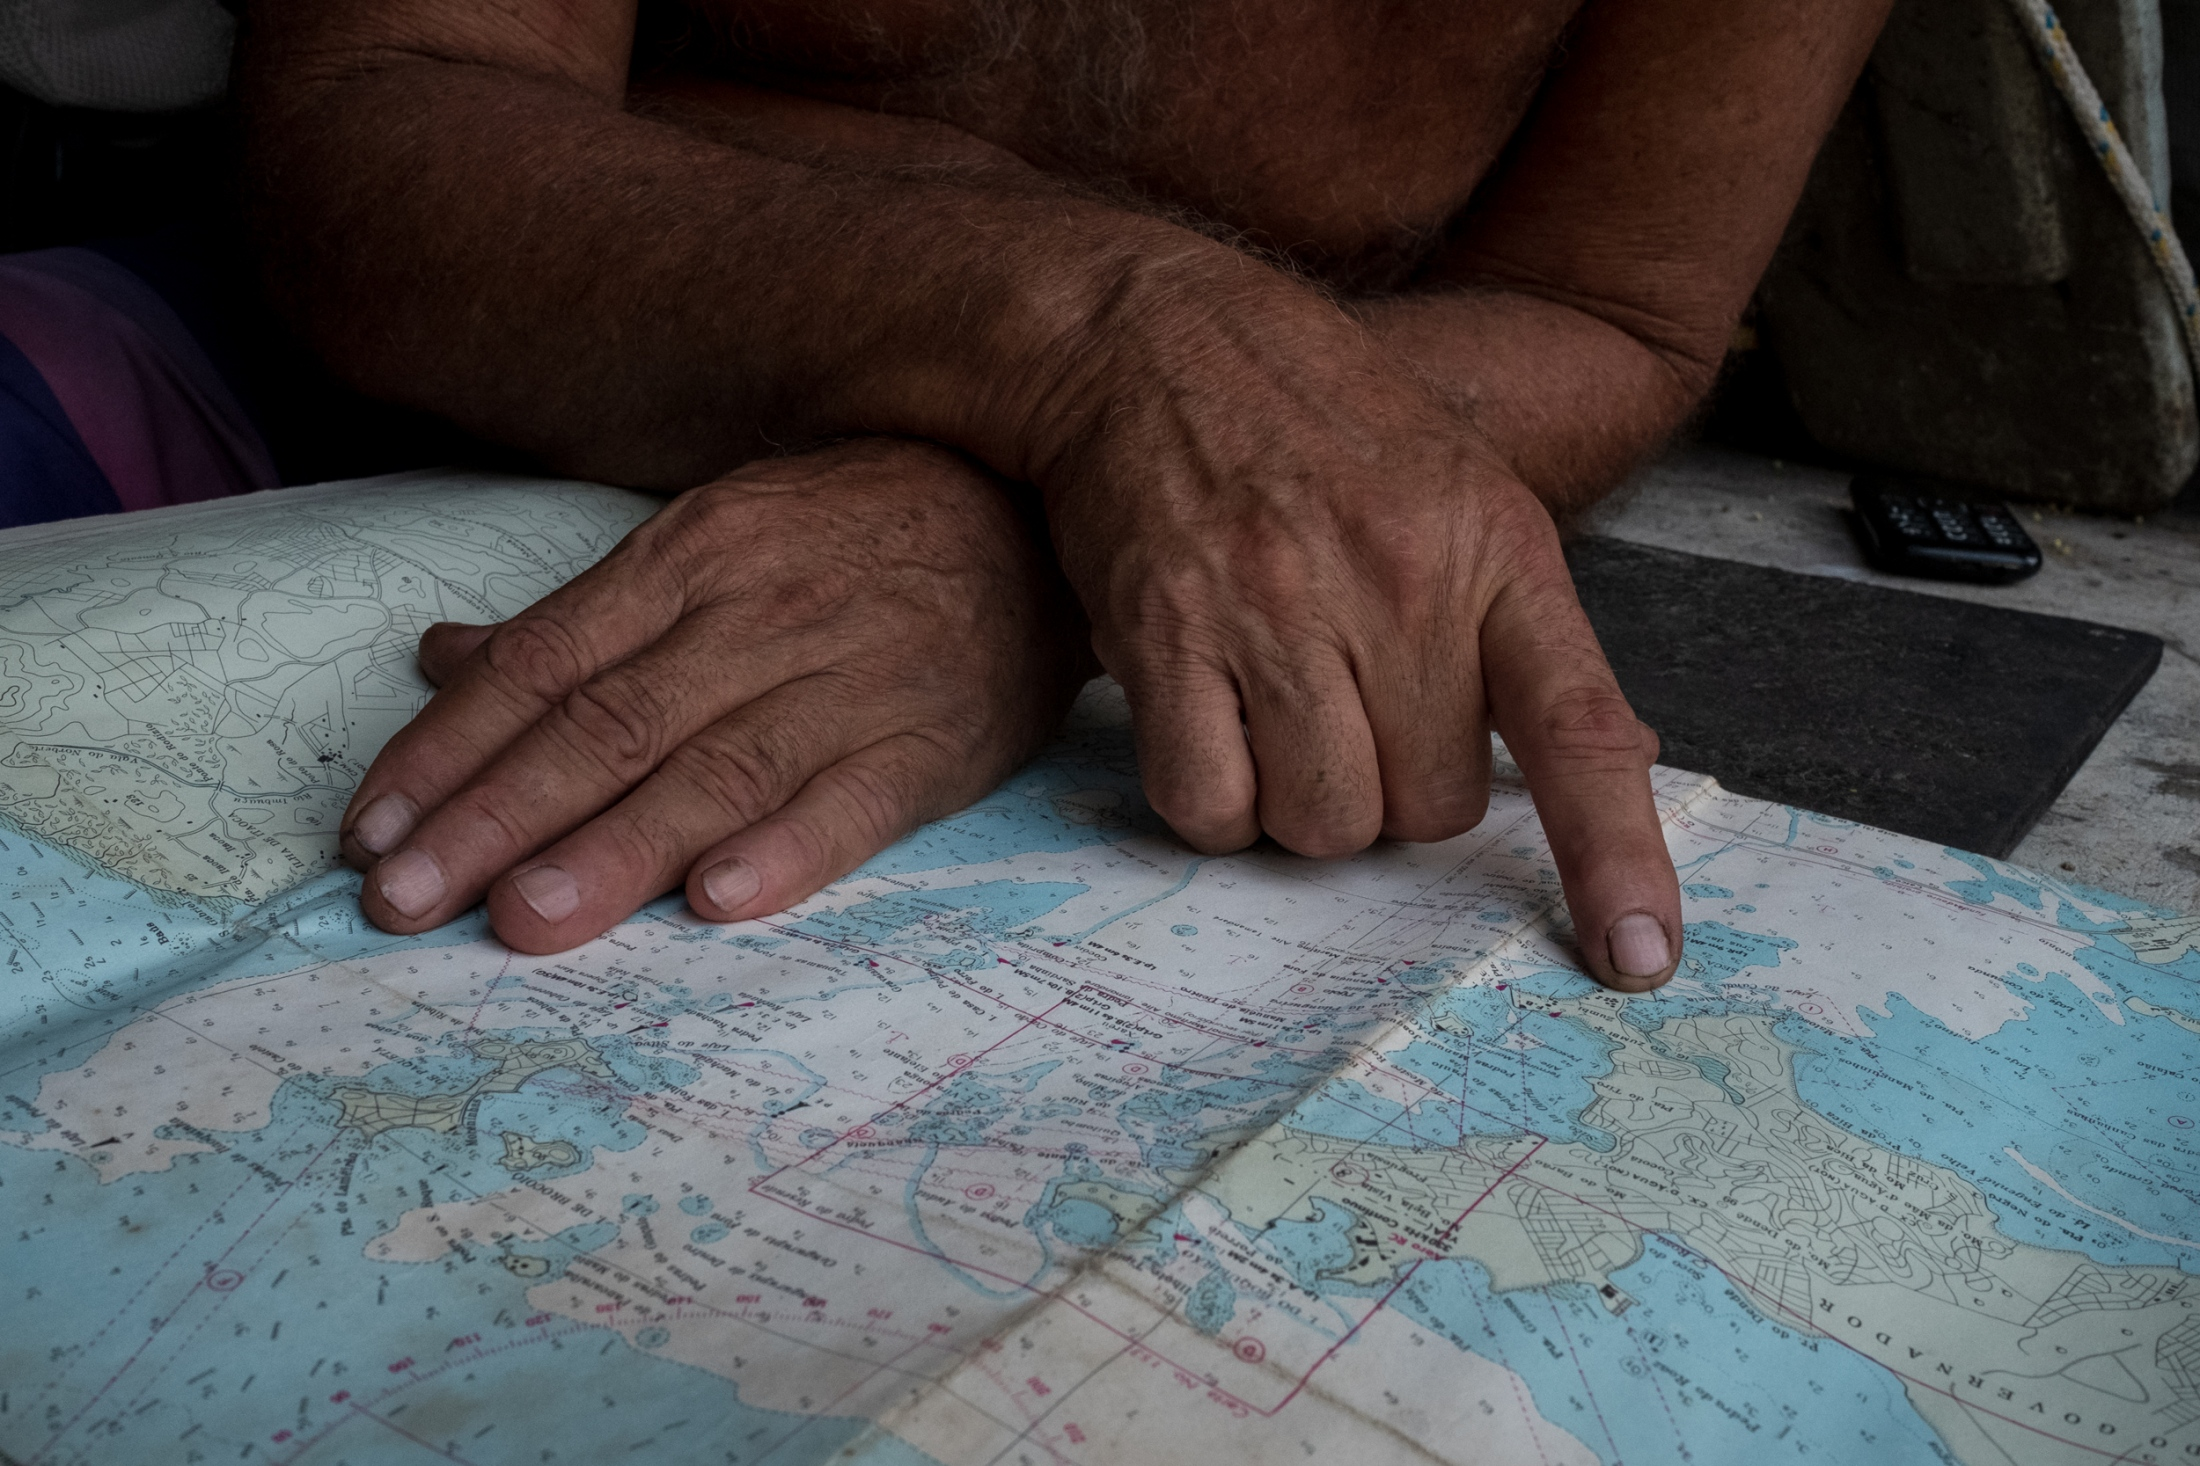 Augusto has plans to move back out to Paquetá island to fish for shrimp, in a secret location he believes will be rich.